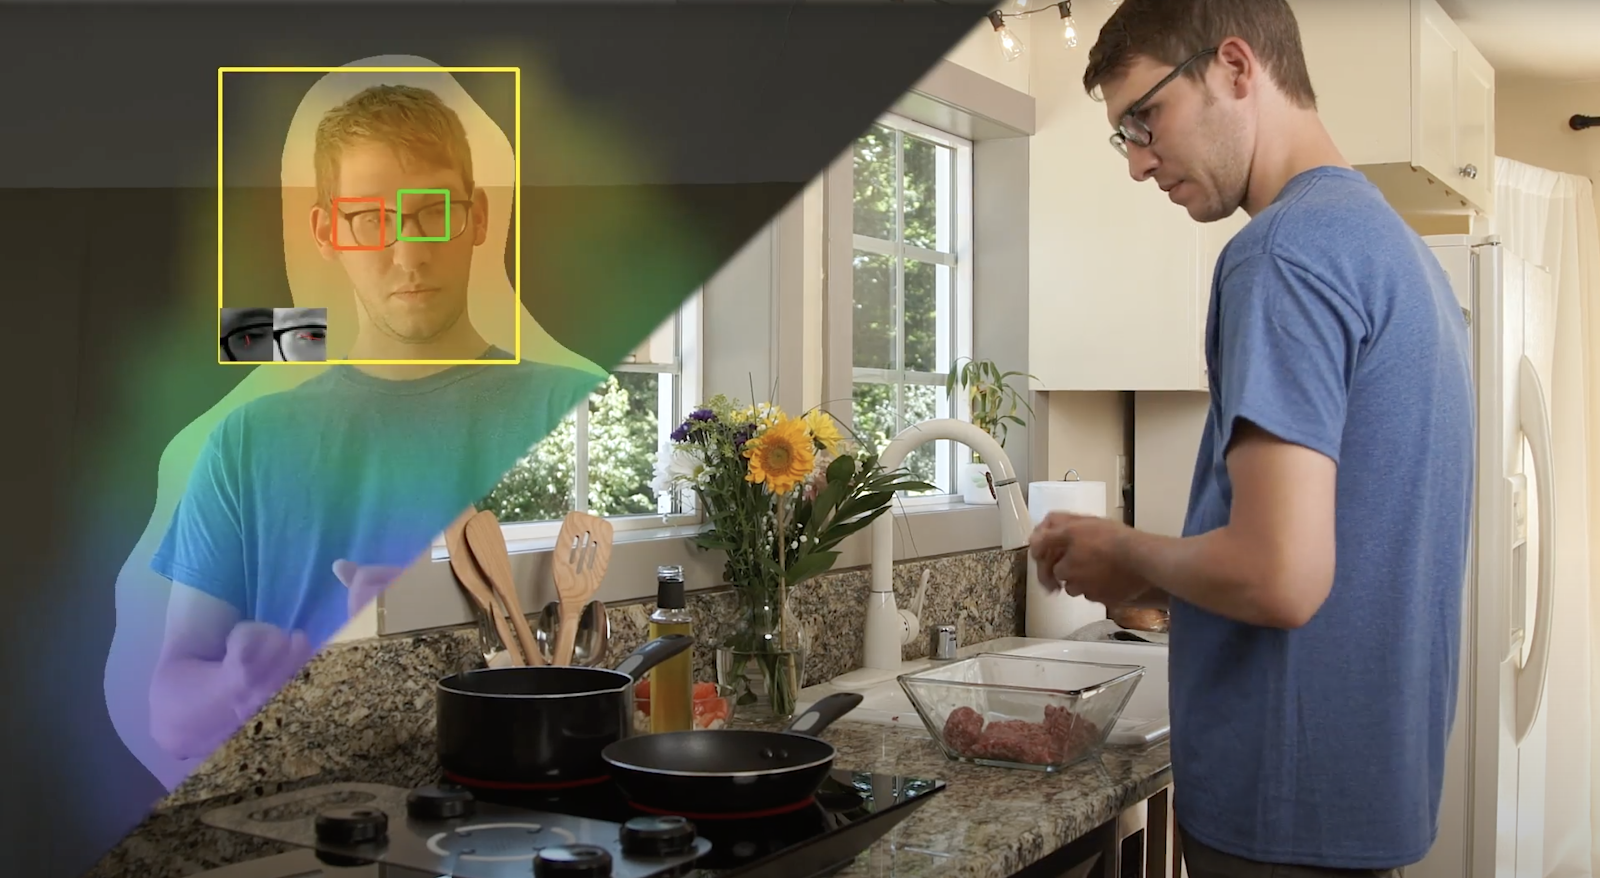 Right side of image shows a person cooking on the Hobgoblin cooktop; left shows the Hobgoblin gaze tracking system finding the person's eyes and using the neural network-based computer vision algorithms to determine gaze direction and triangulate which burner is being looked at.